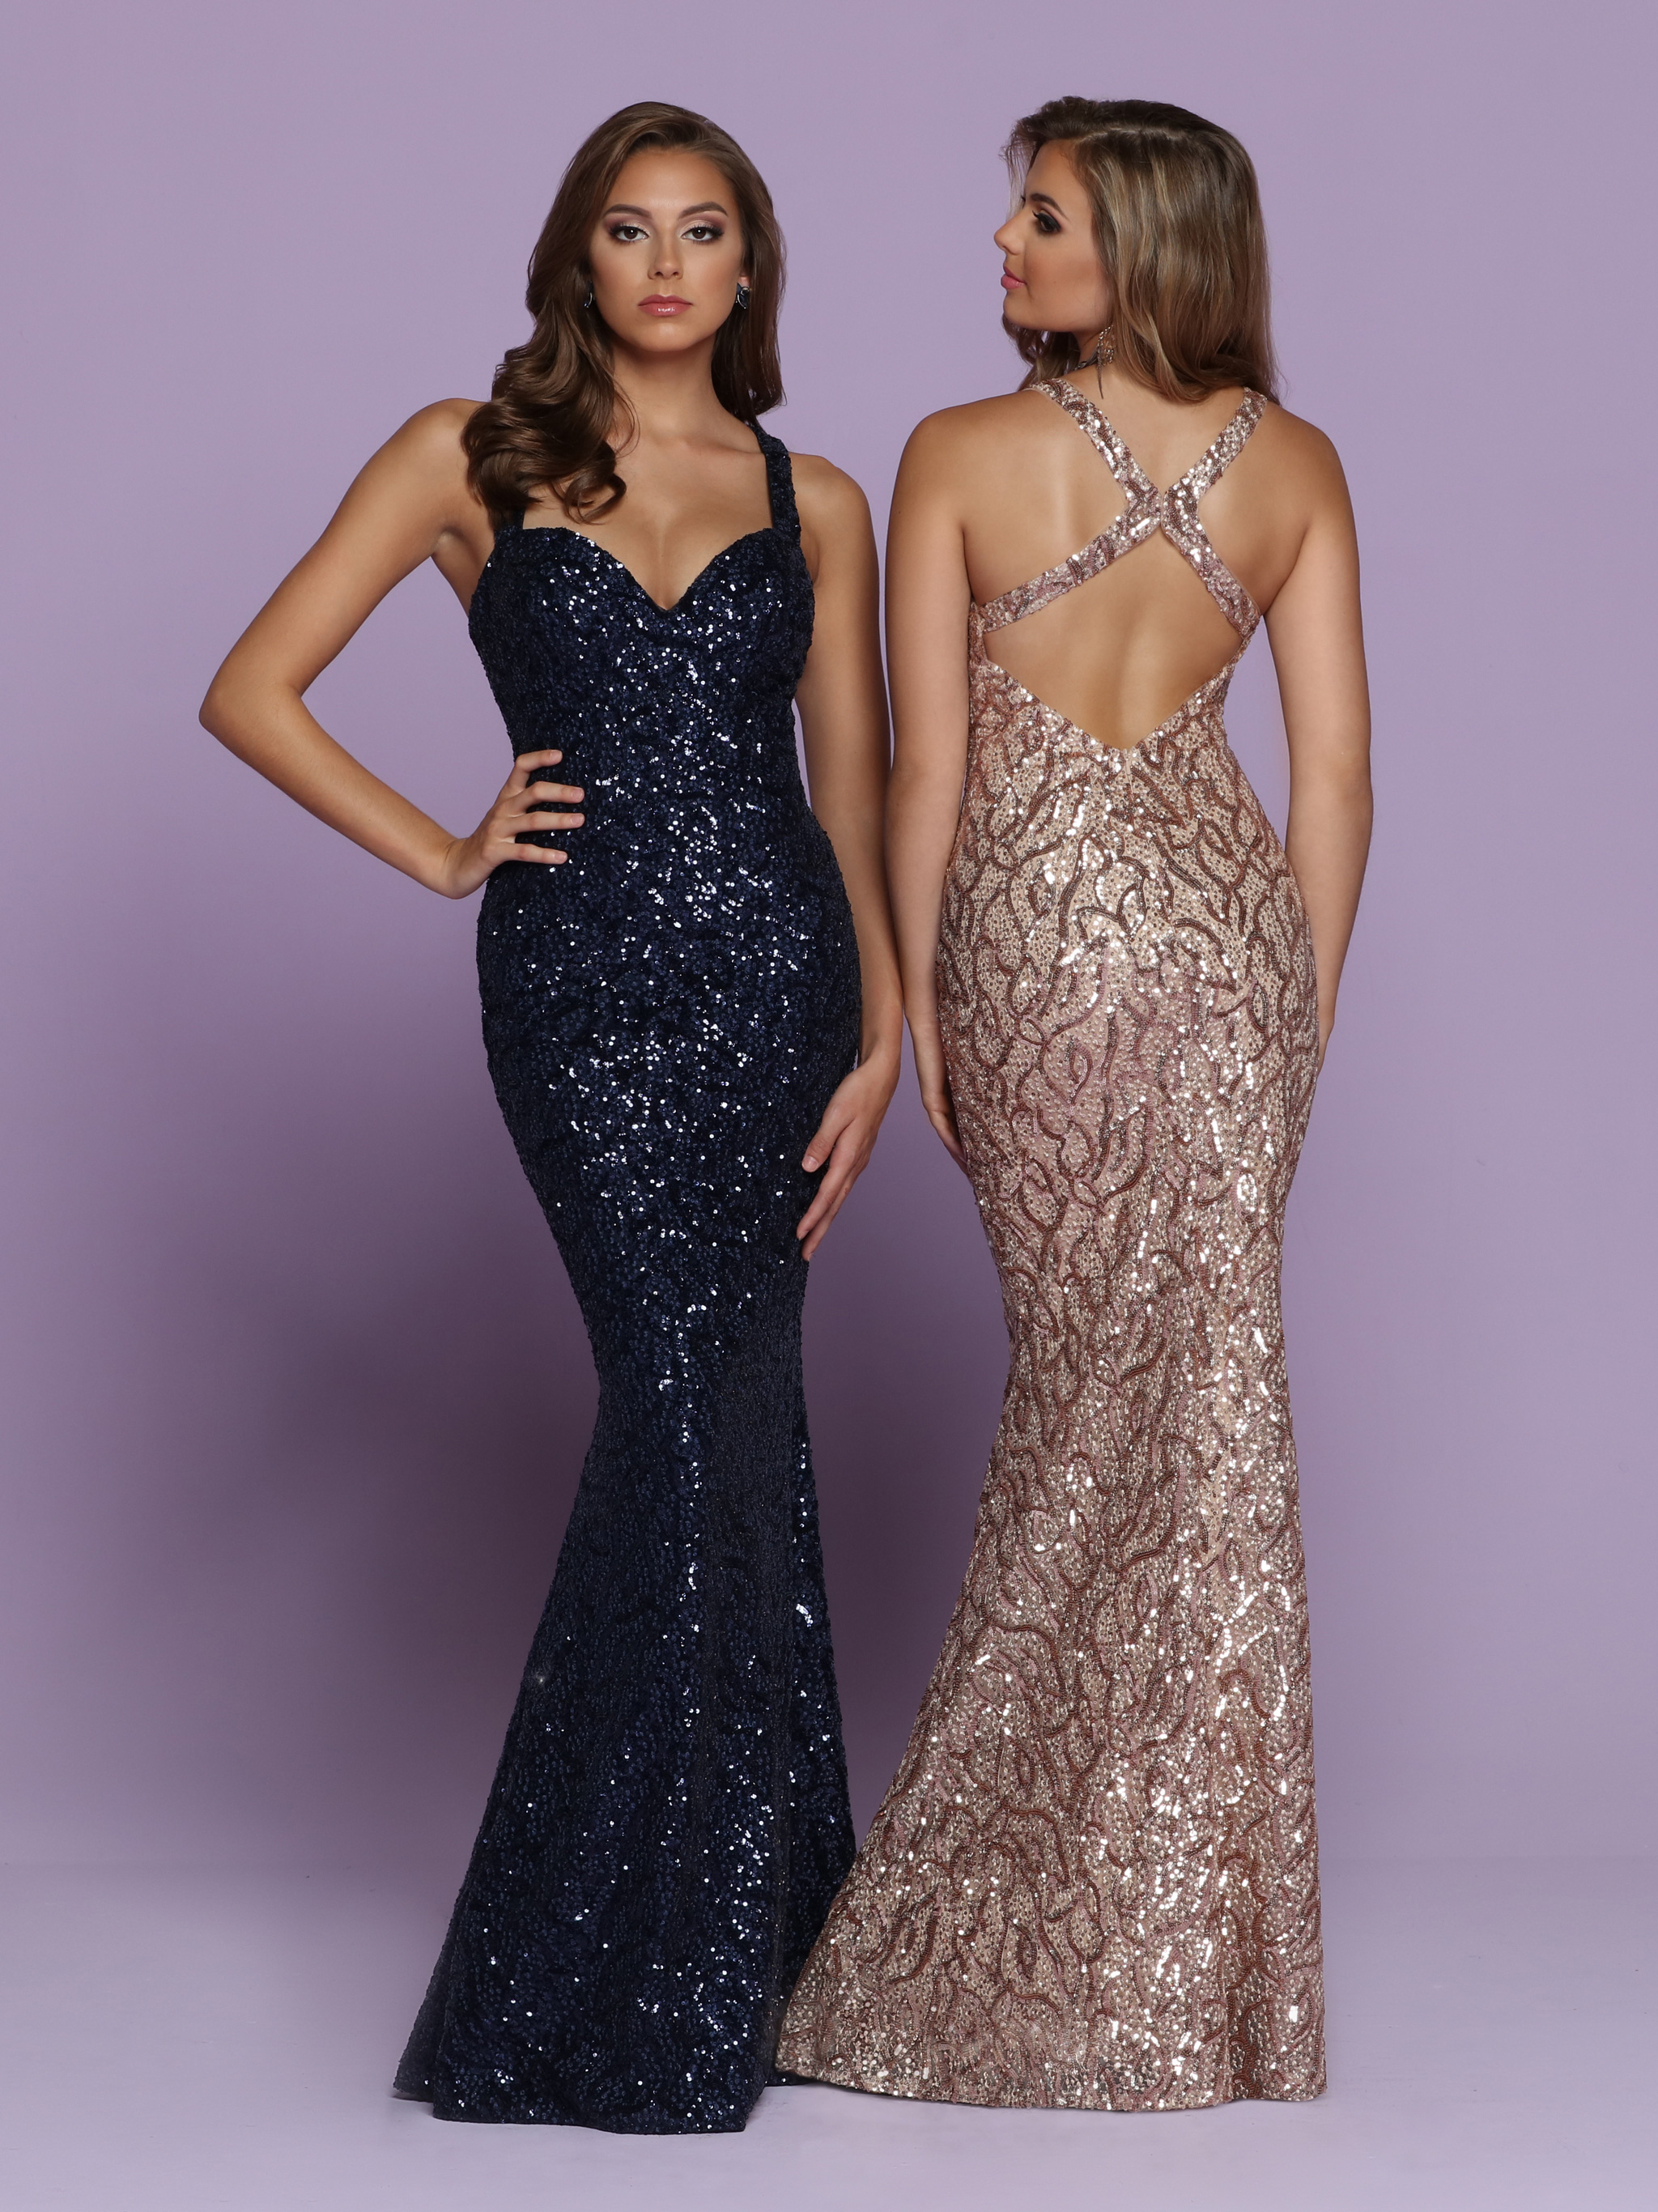 Image showing back view of style #72132